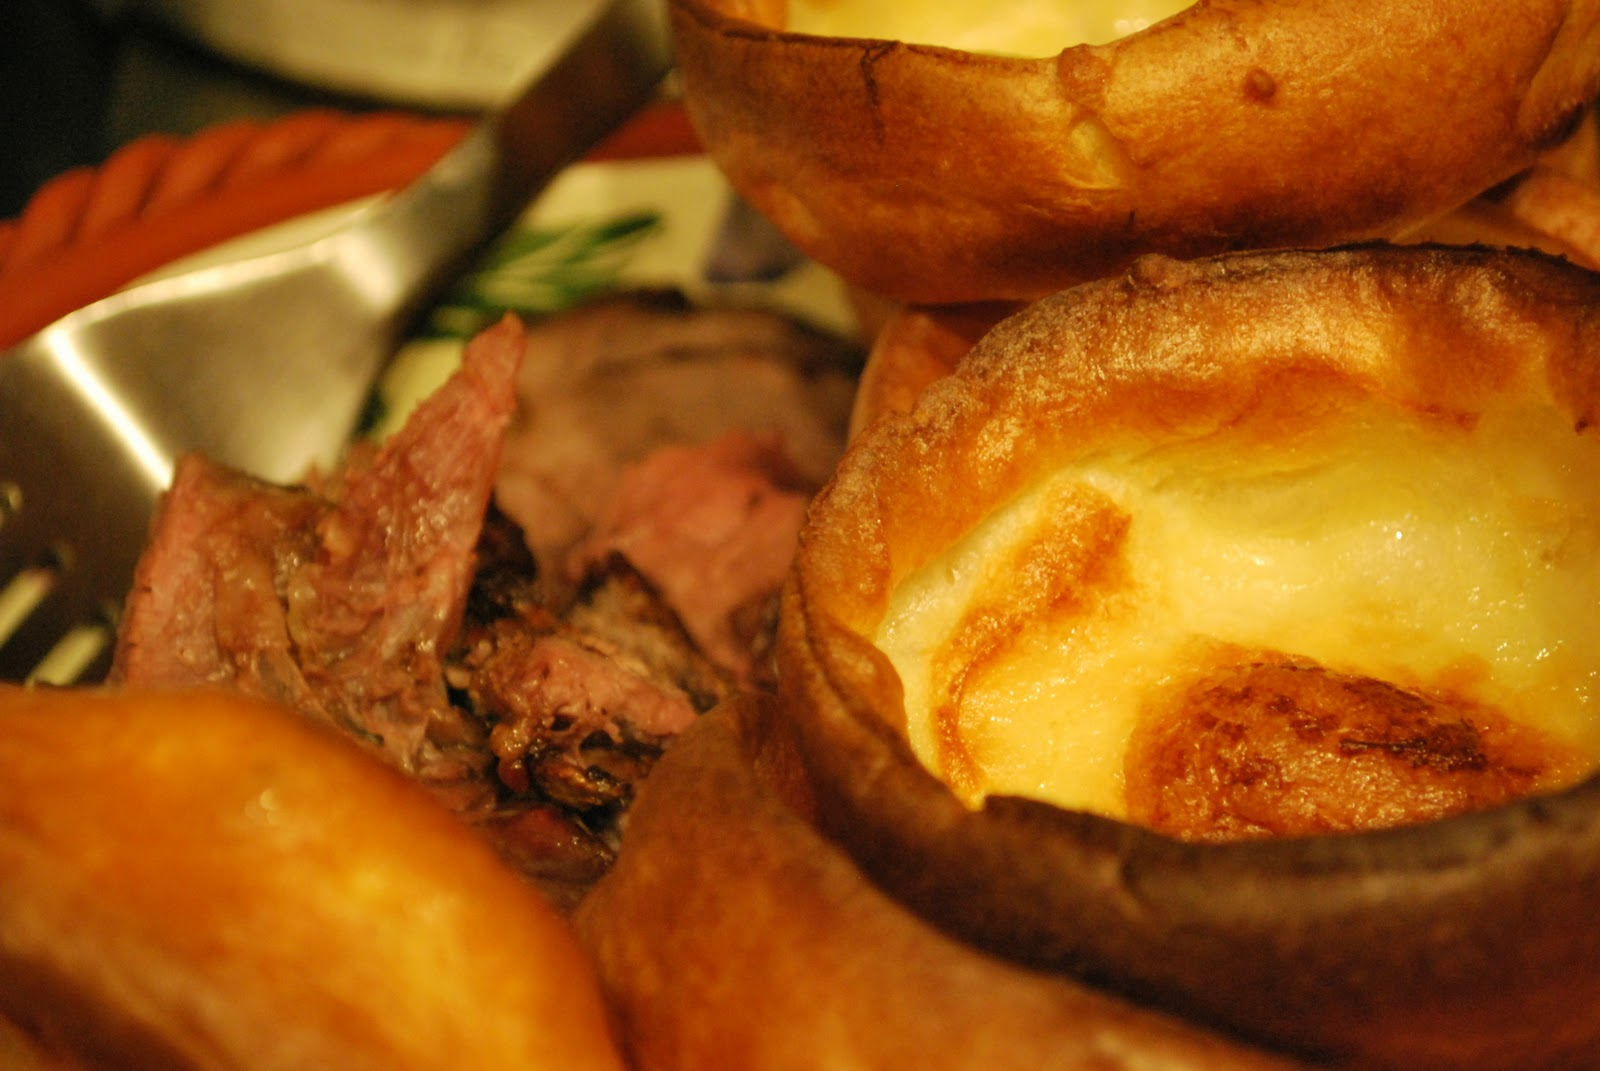 traditionally yorkshire pudding was served before the beef with gravy